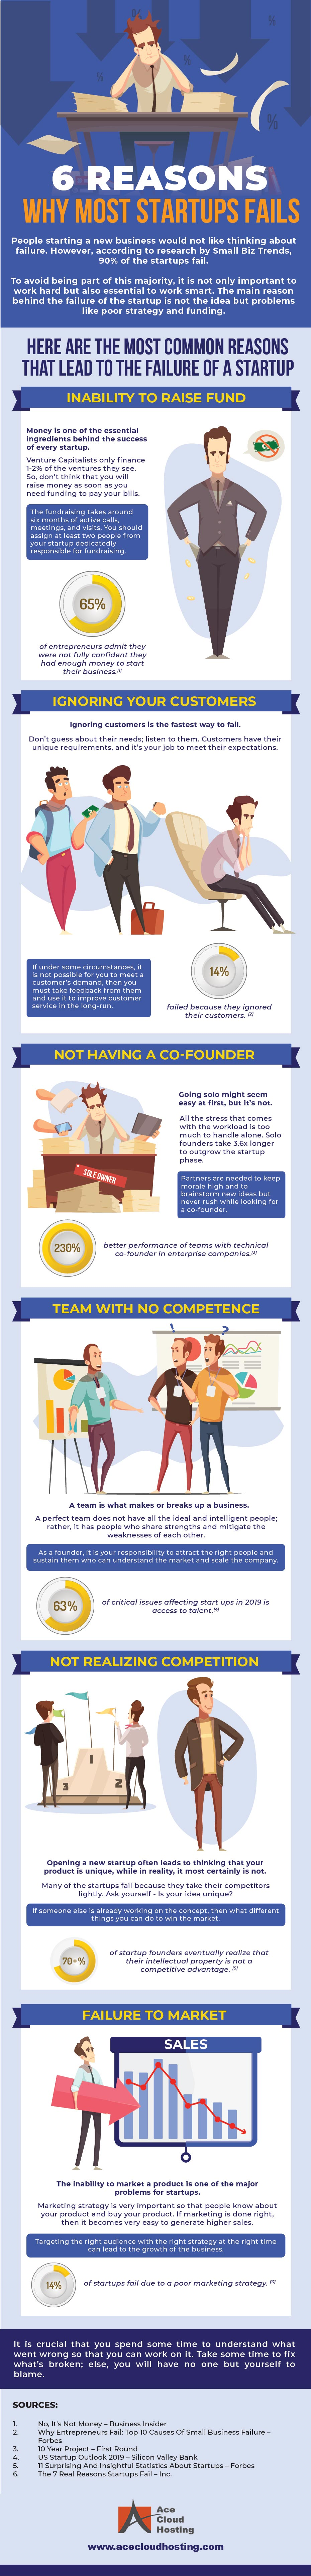 6 Reasons Why Most Startups Fail [Infographic]